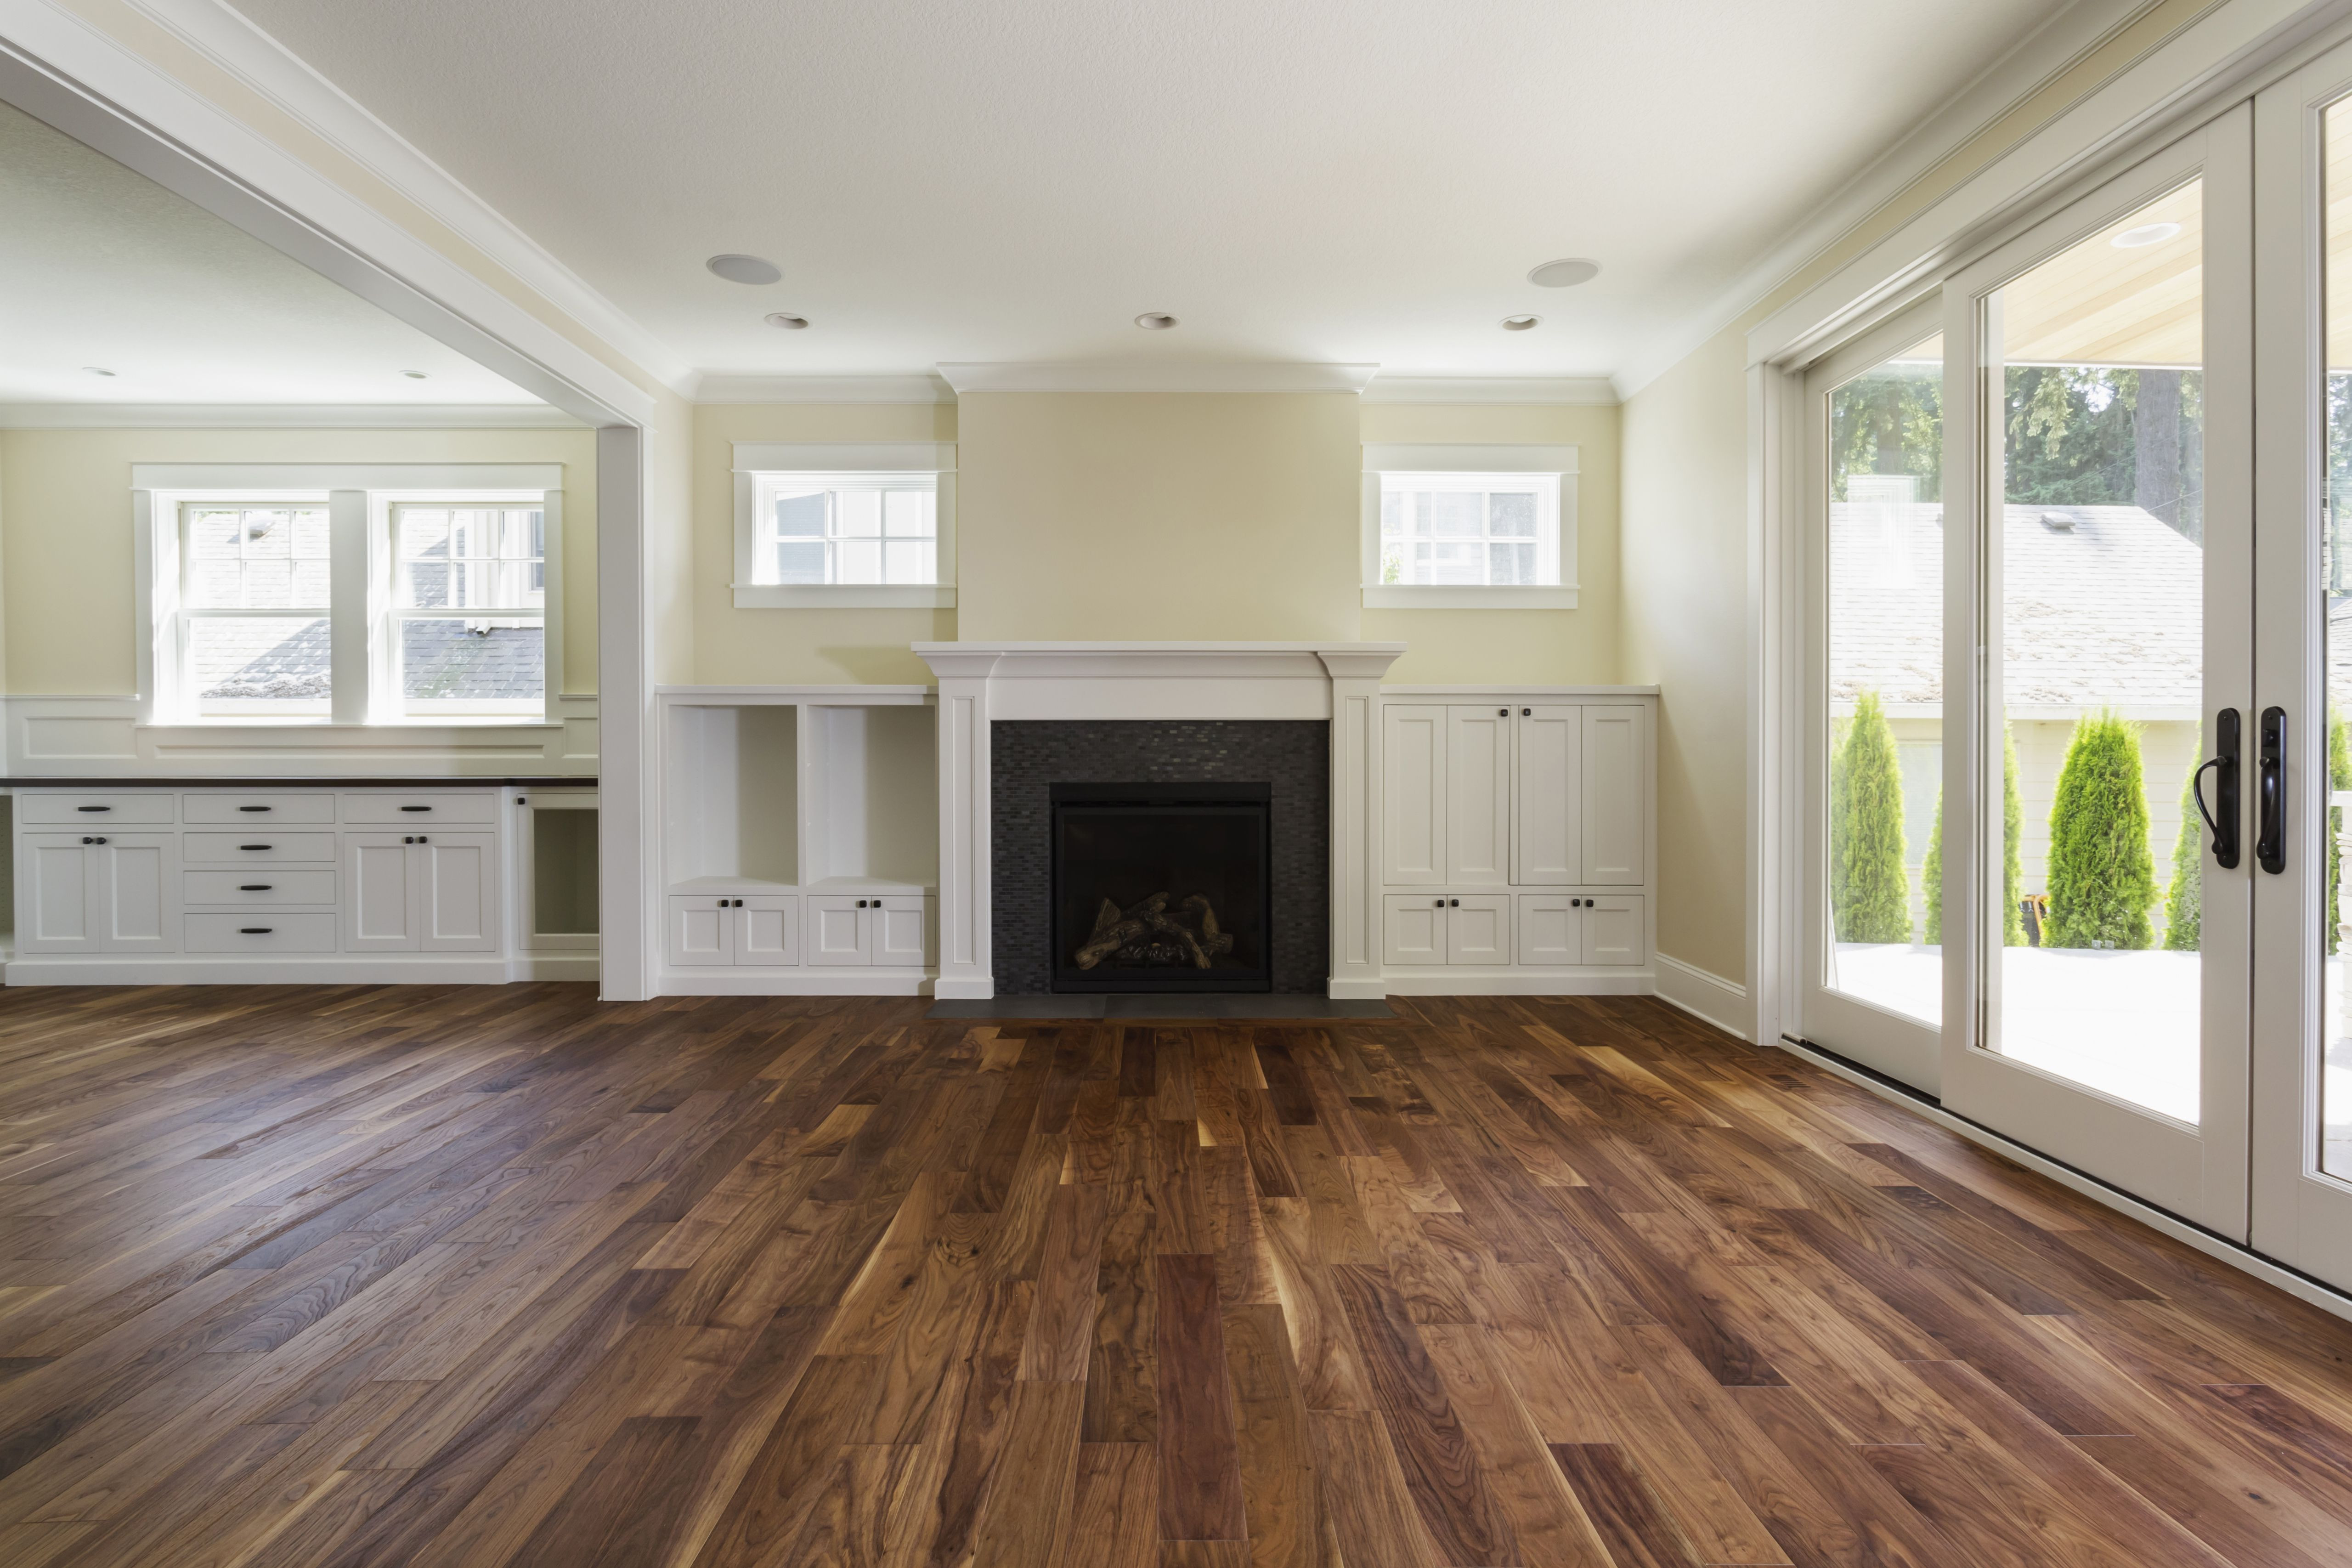 cost of refinishing hardwood floors vs replacing of the pros and cons of prefinished hardwood flooring throughout fireplace and built in shelves in living room 482143011 57bef8e33df78cc16e035397